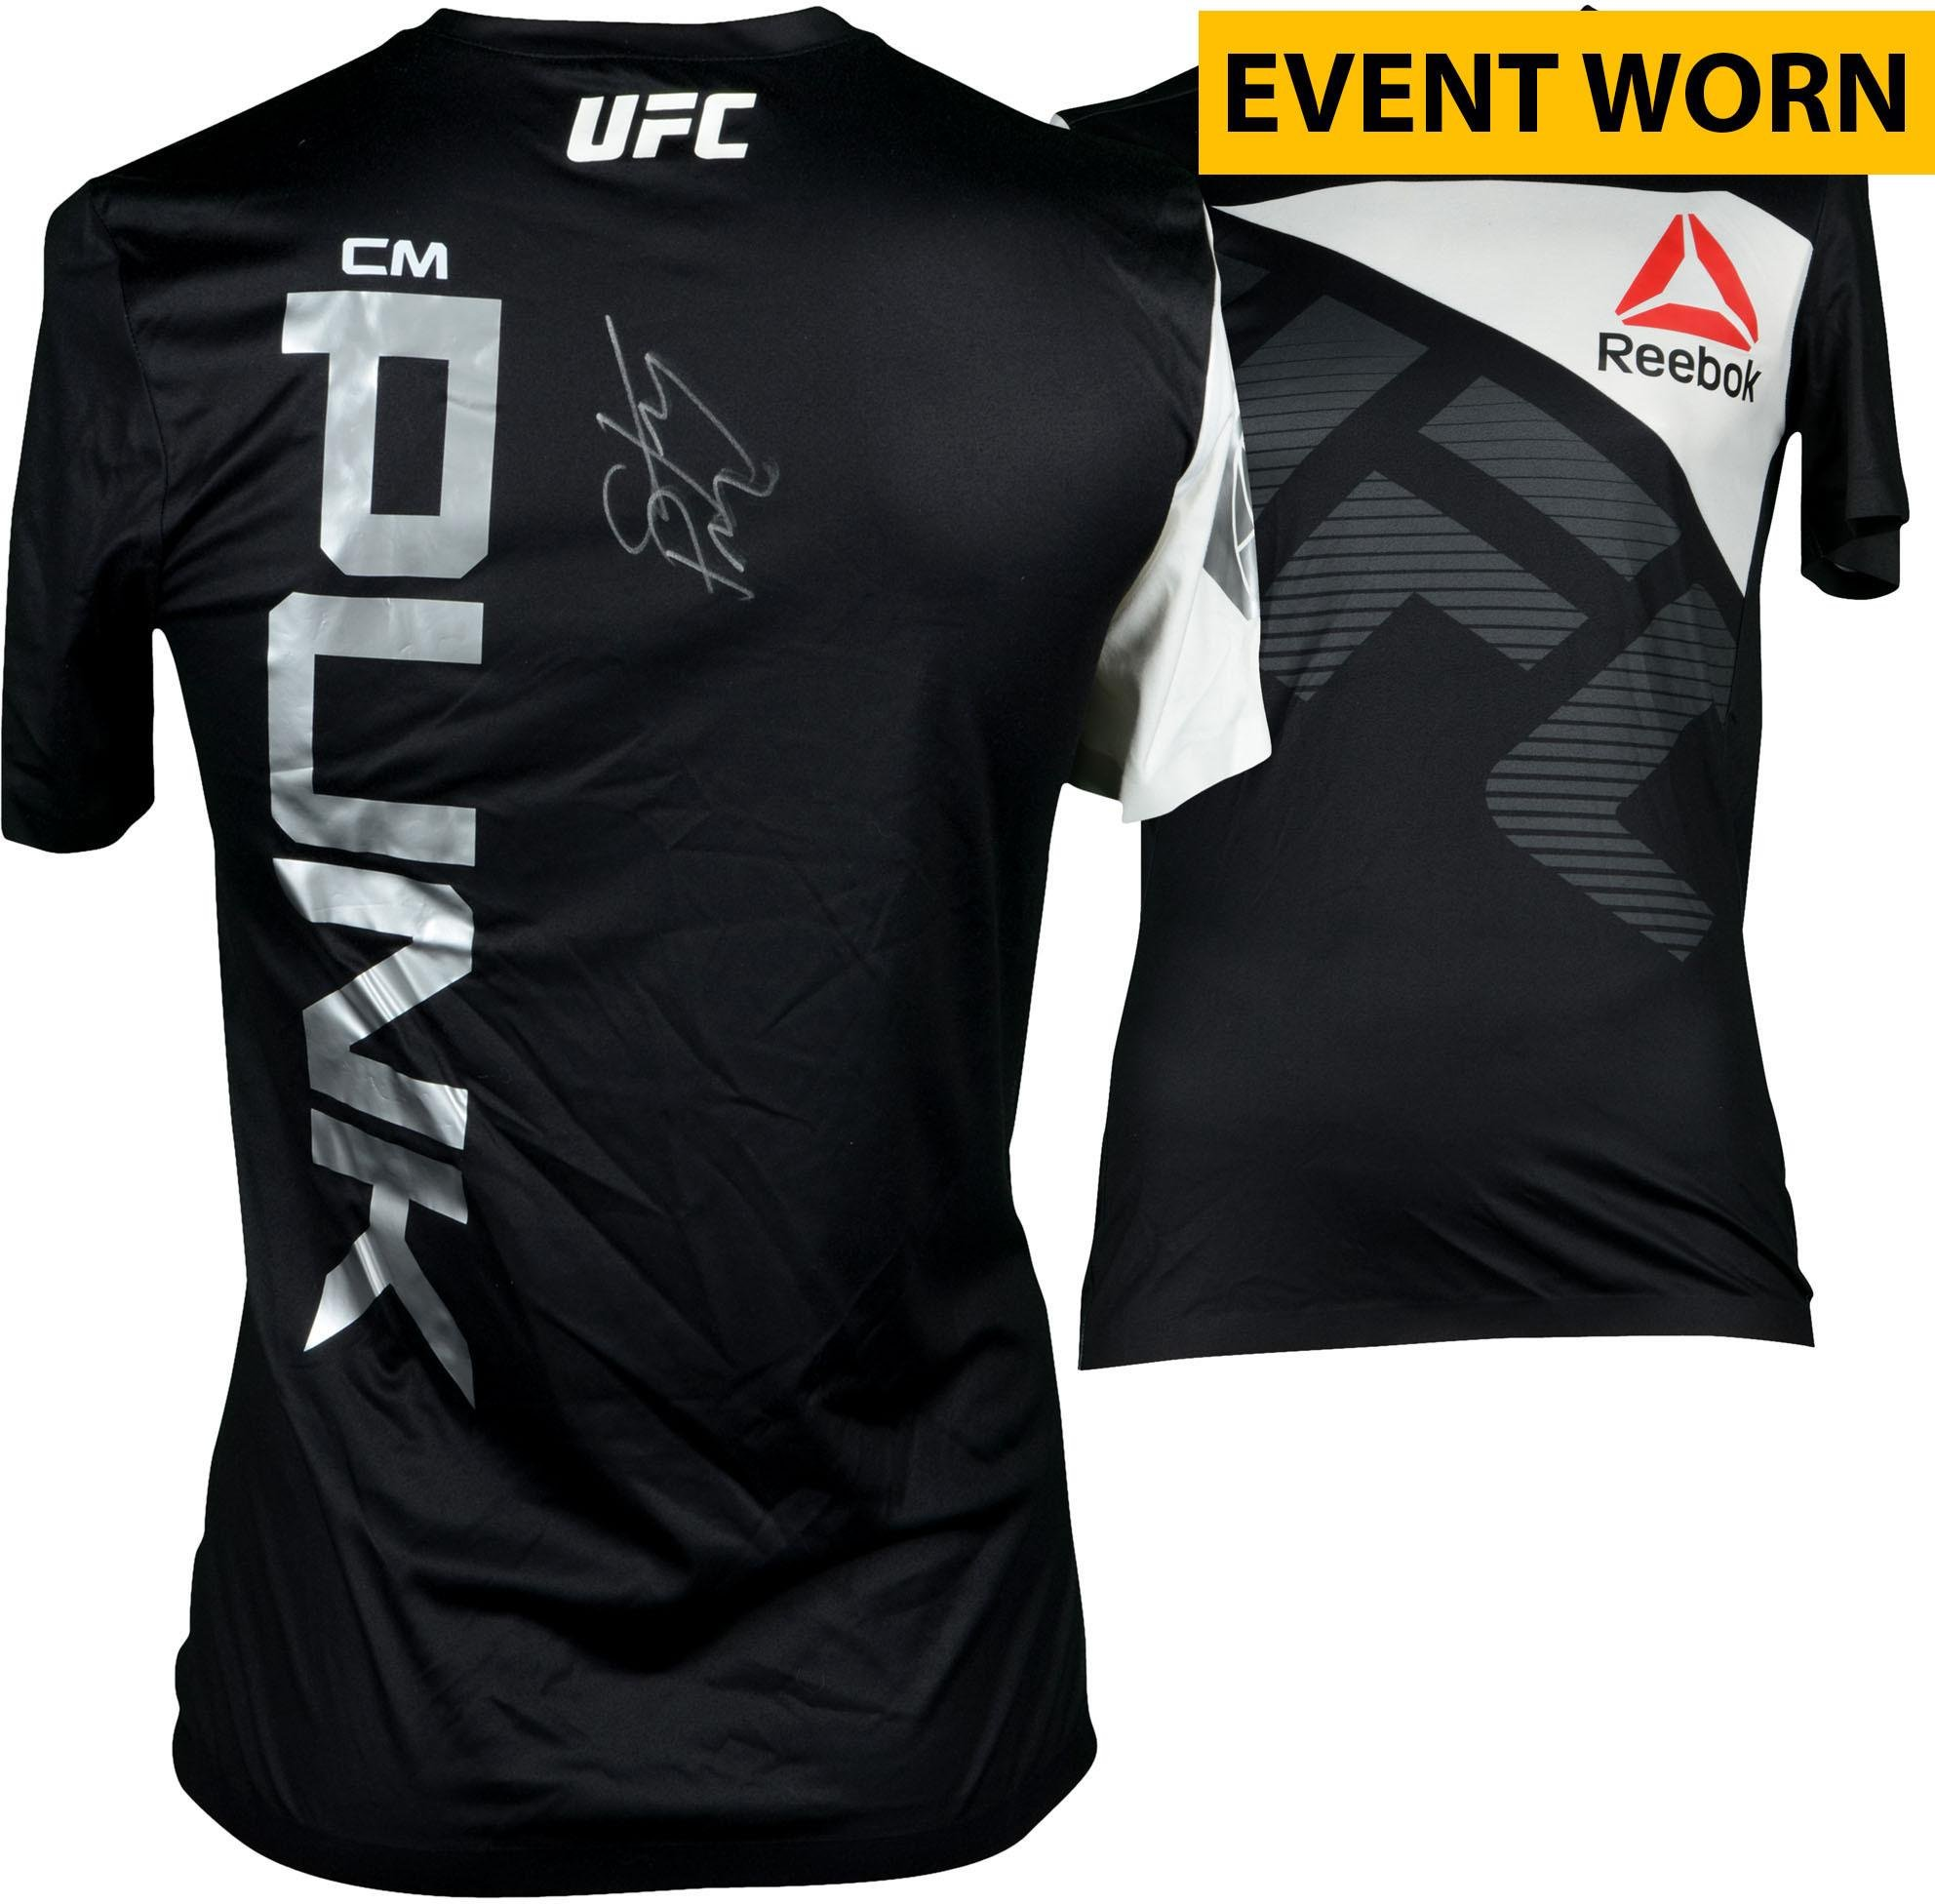 CM Punk Ultimate Fighting Championship Autographed UFC 203  Miocic vs.  Overeem Event-Worn Walkout Jersey – Fought Mickey Gall in a Welterweight  Bout ... 33086c0ff